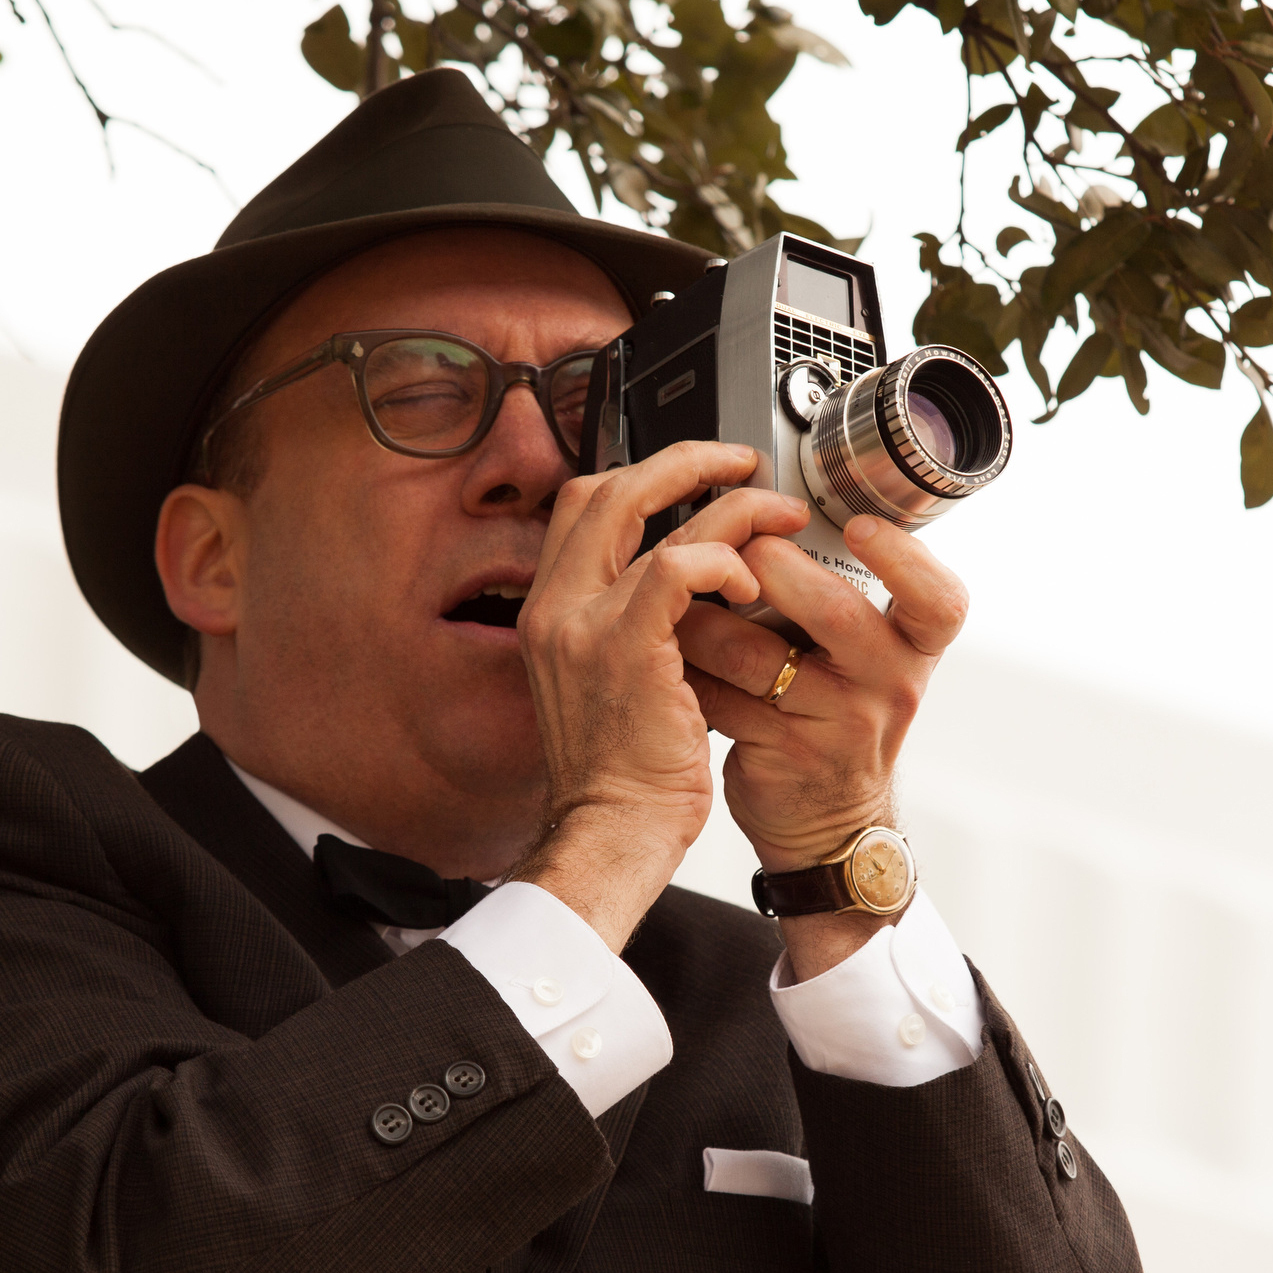 Paul Giamatti plays Abraham Zapruder, who caught the assassination on film and became wrapped up in the security and media frenzy.